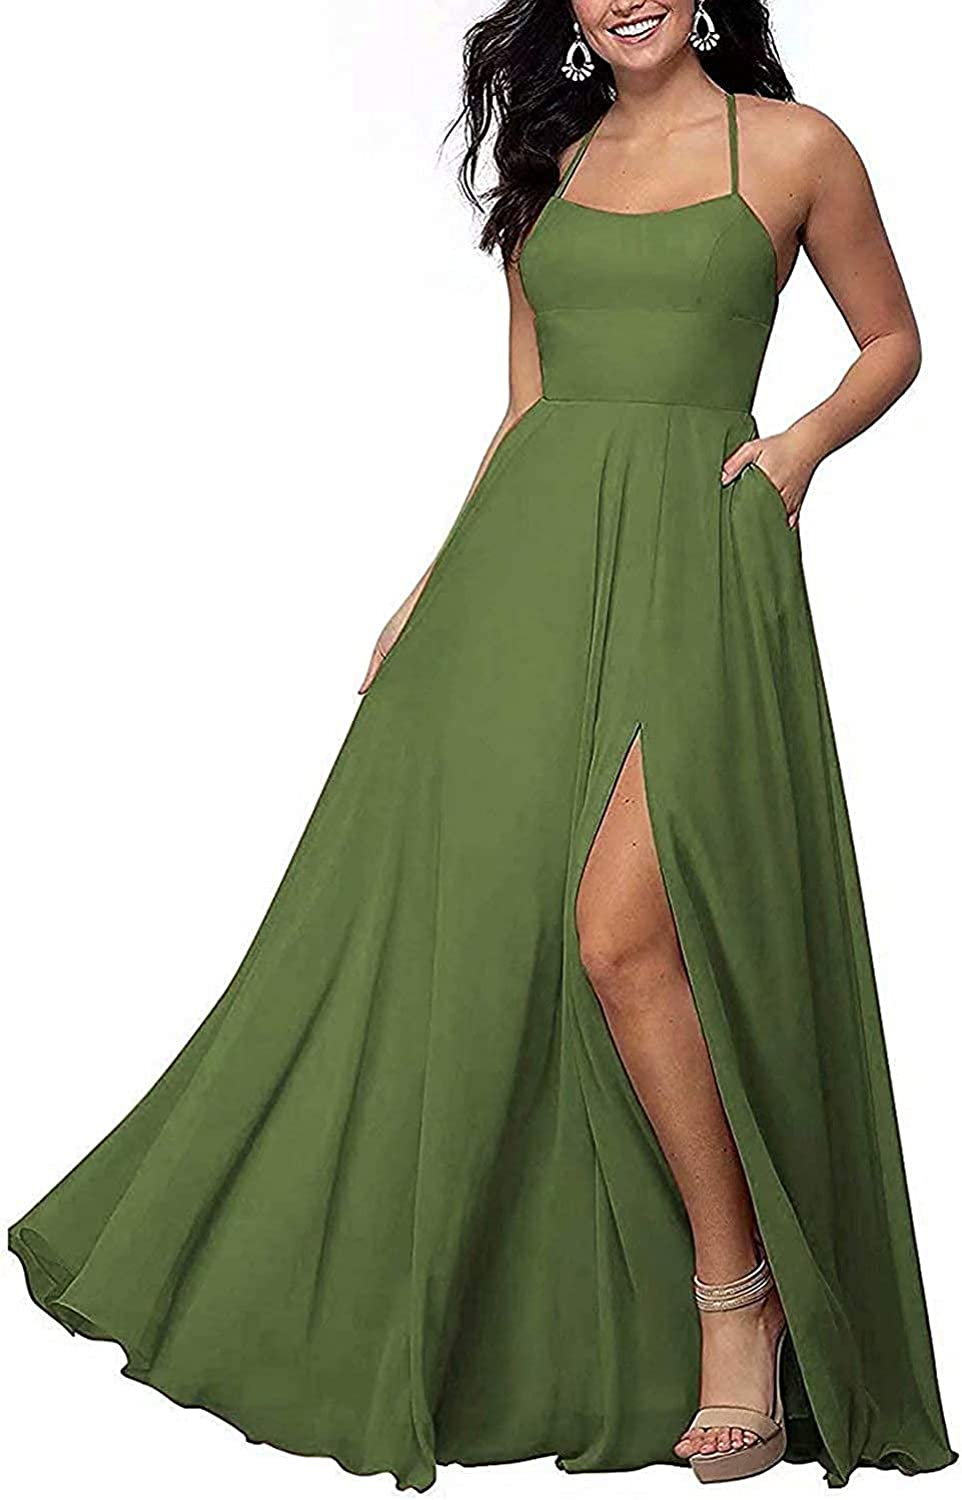 Women's Bridesmaid Dresses for Wedding Party Long Prom Dress Halter Formal Evening Gowns Chiffon with Slit